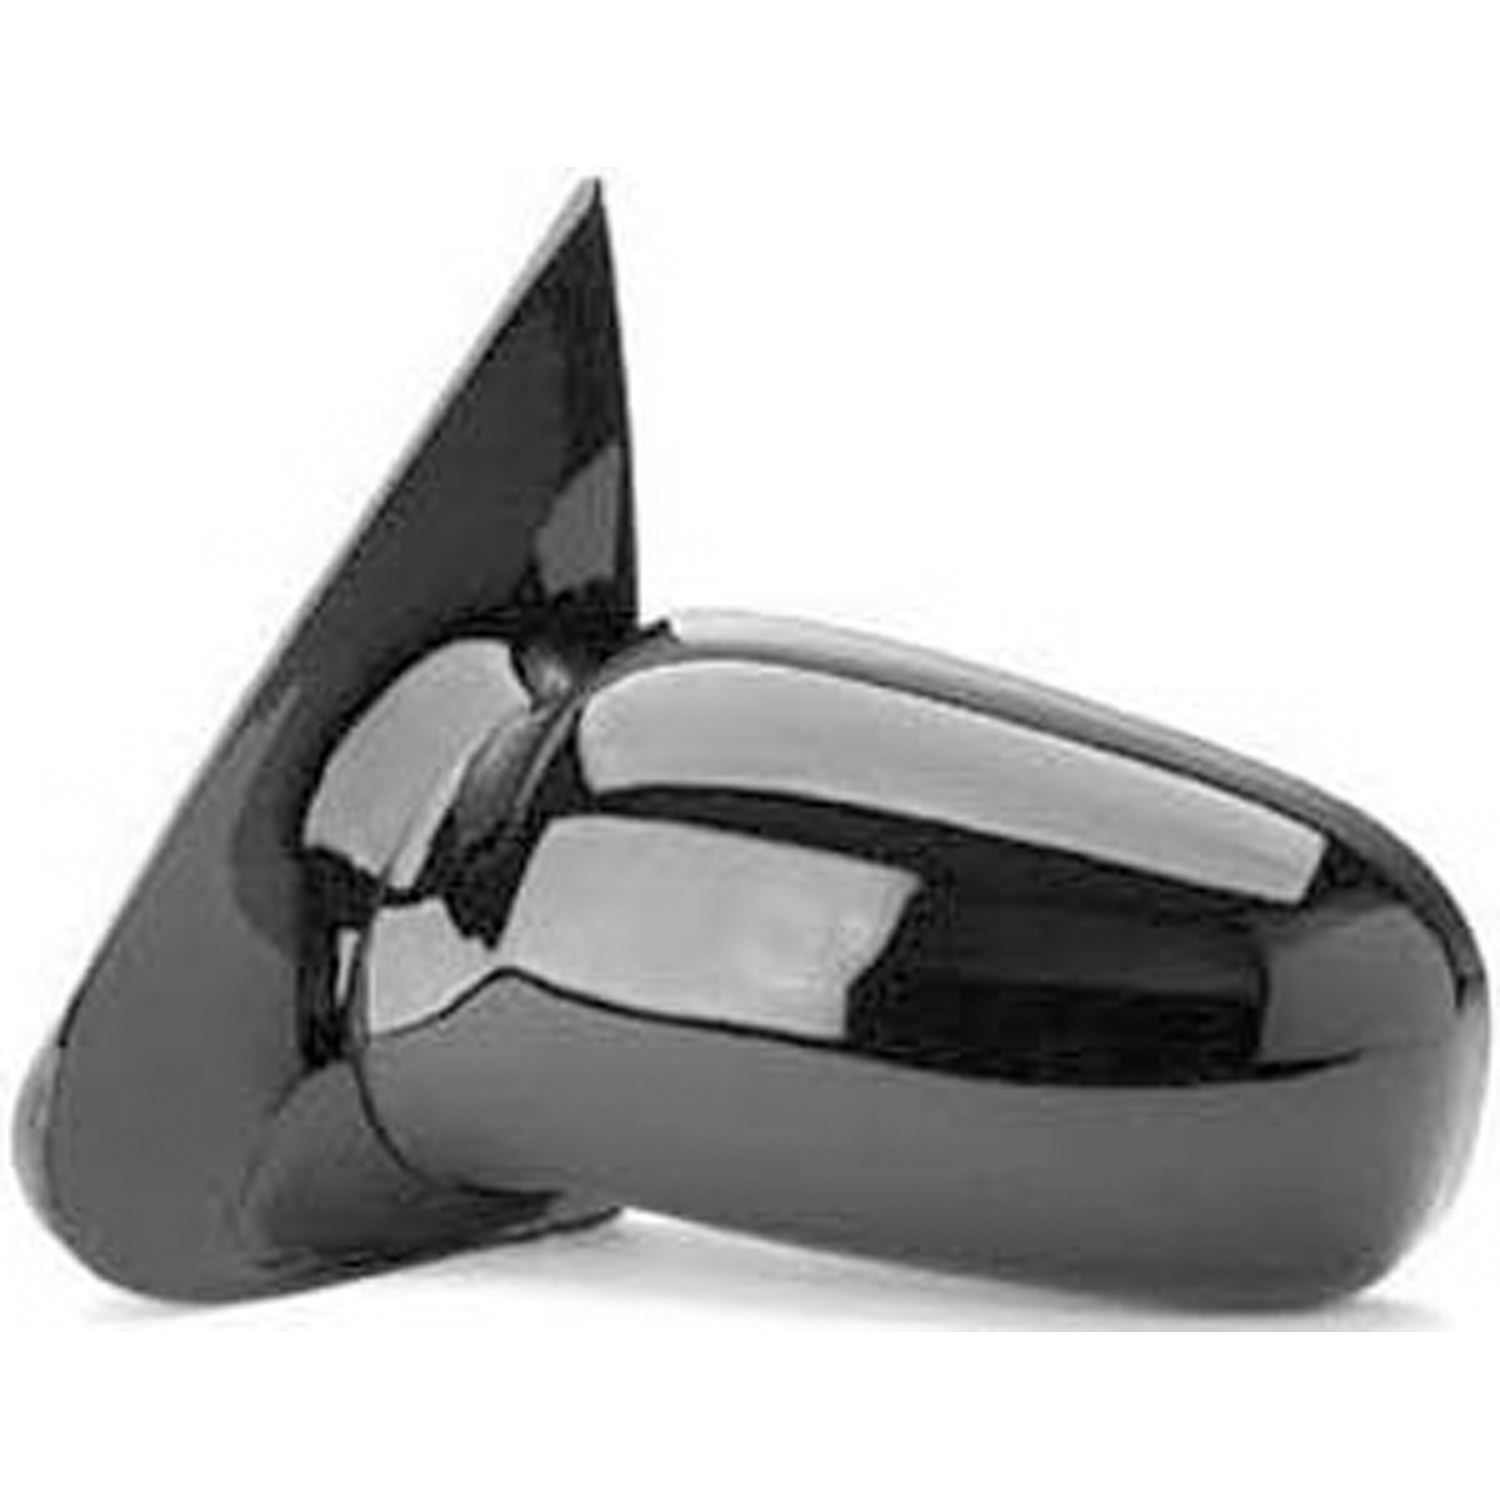 1995-2005 Chevrolet Cavalier  Driver Side Left Power Door Mirror Assembly, 10362464; 22728843; 22679780